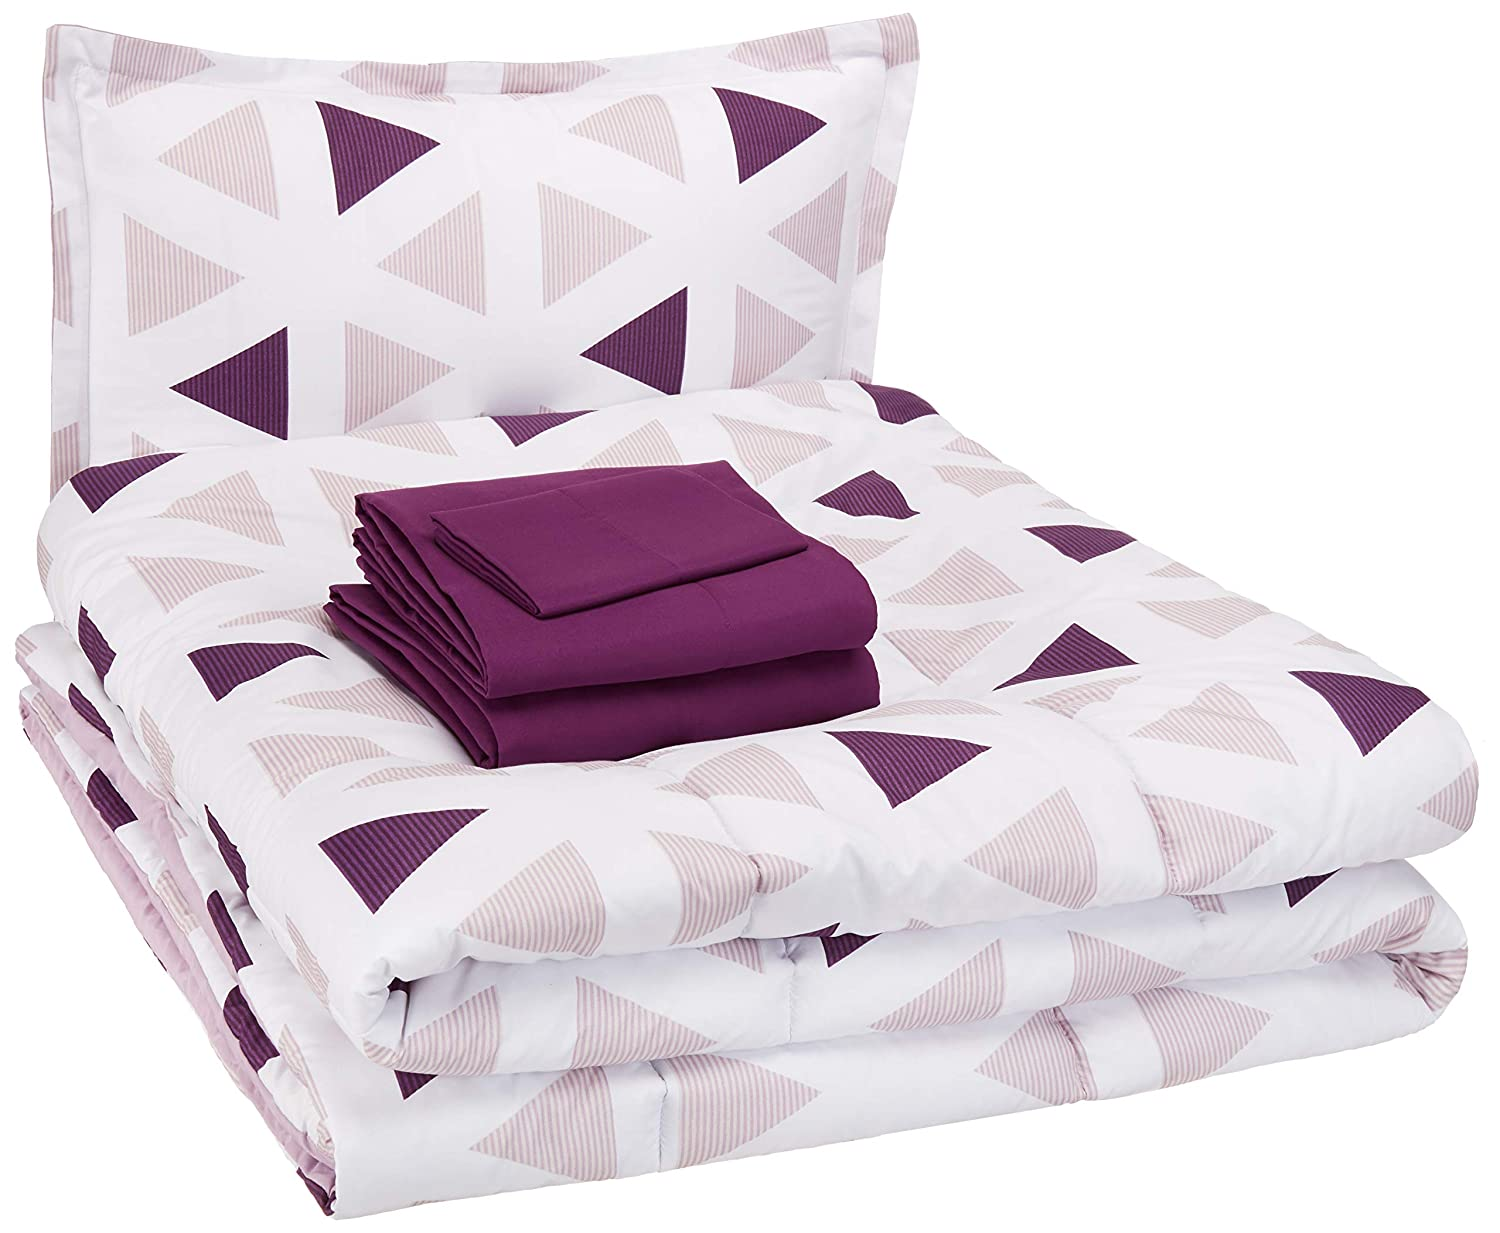 AmazonBasics Easy-Wash Microfiber Kid's Bed-in-a-Bag Bedding Set - Twin, Purple Triangles